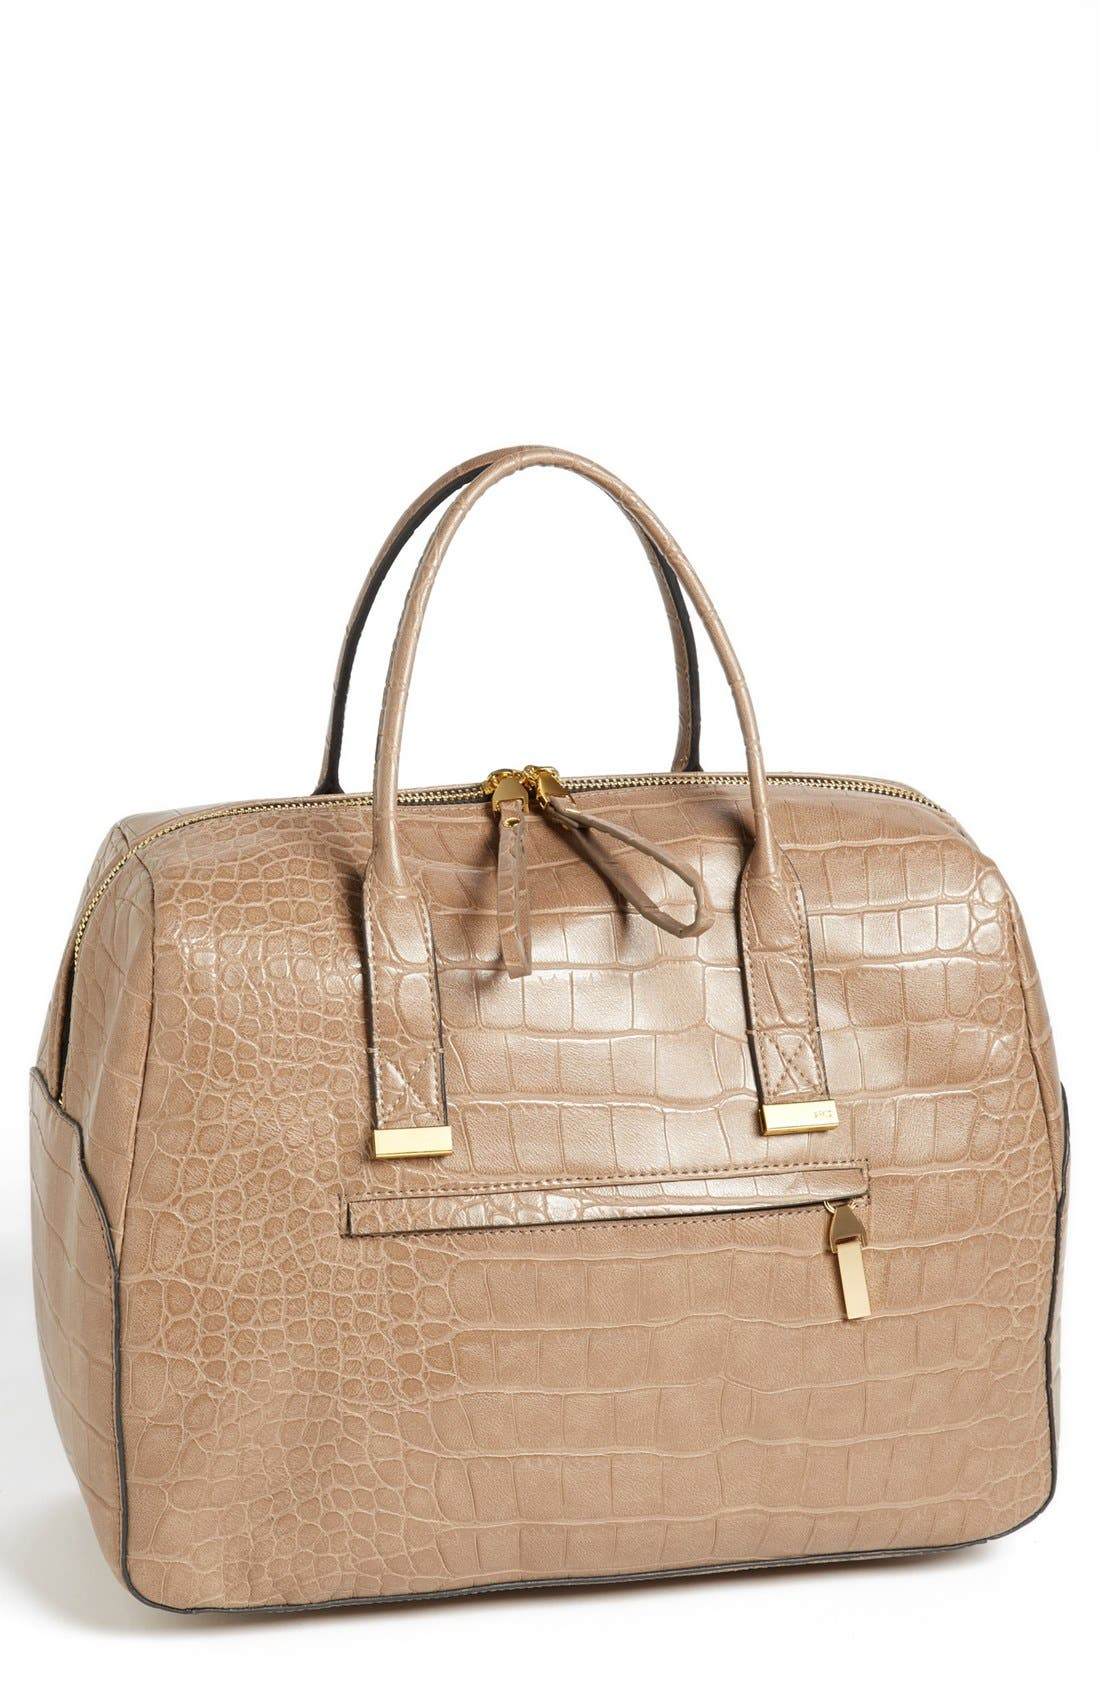 Main Image - French Connection 'Animal Mania' Croc Embossed Faux Leather Satchel